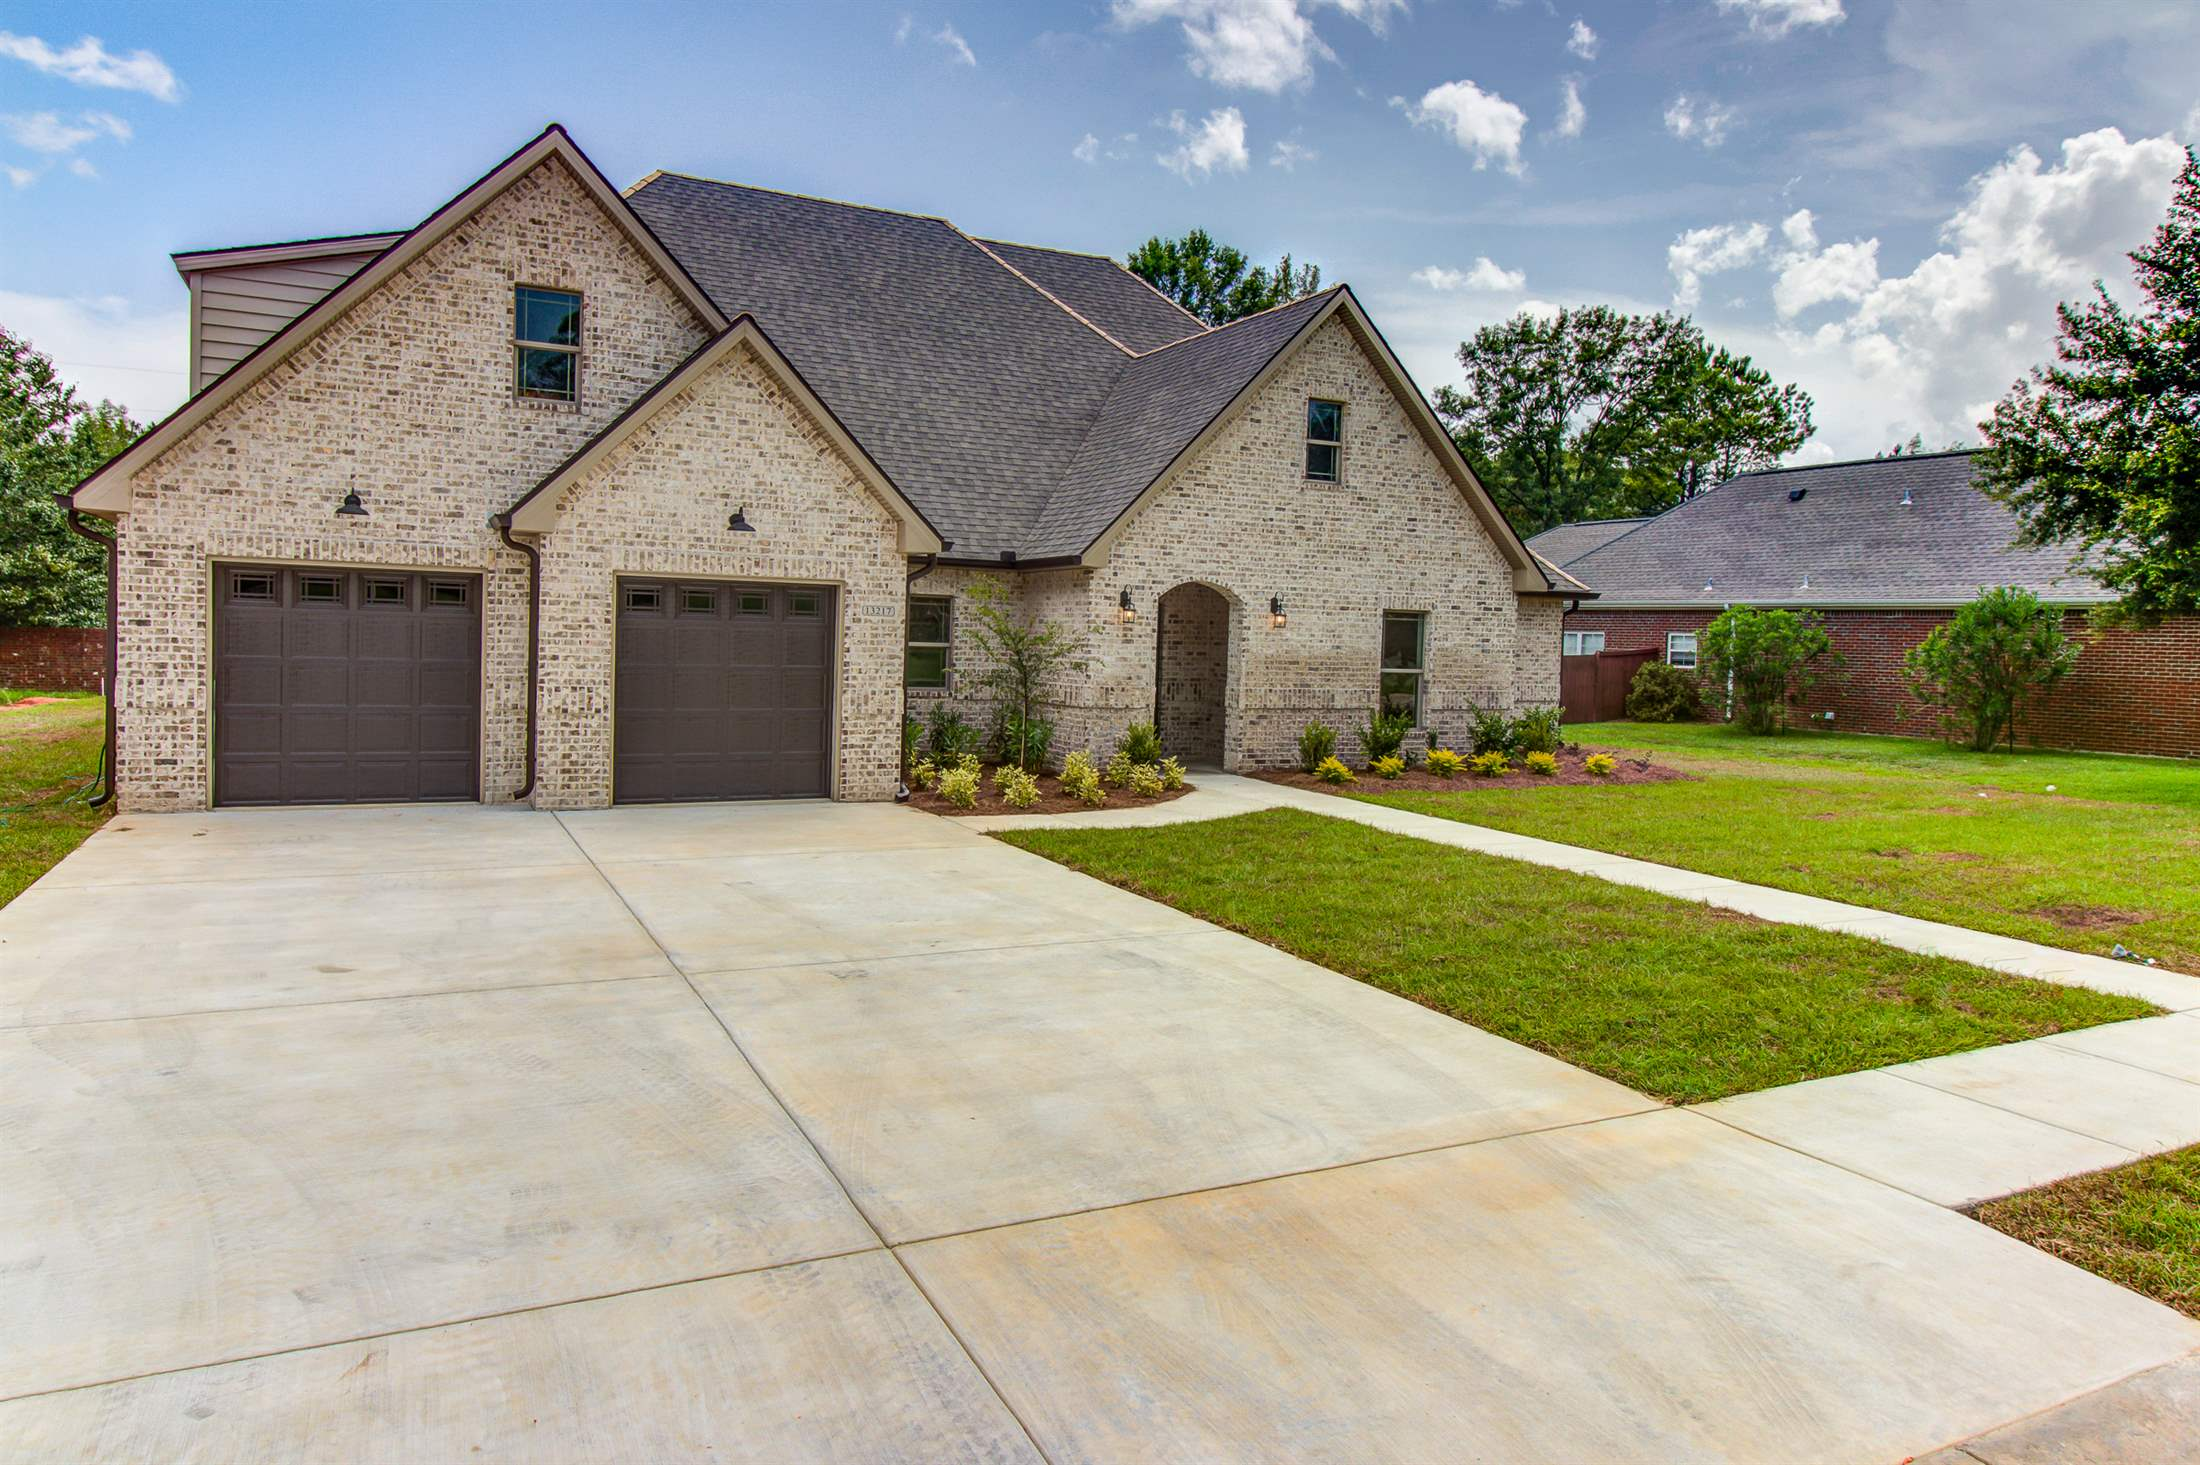 Lot 23 Chasae Ln, Gulfport, MS 39503